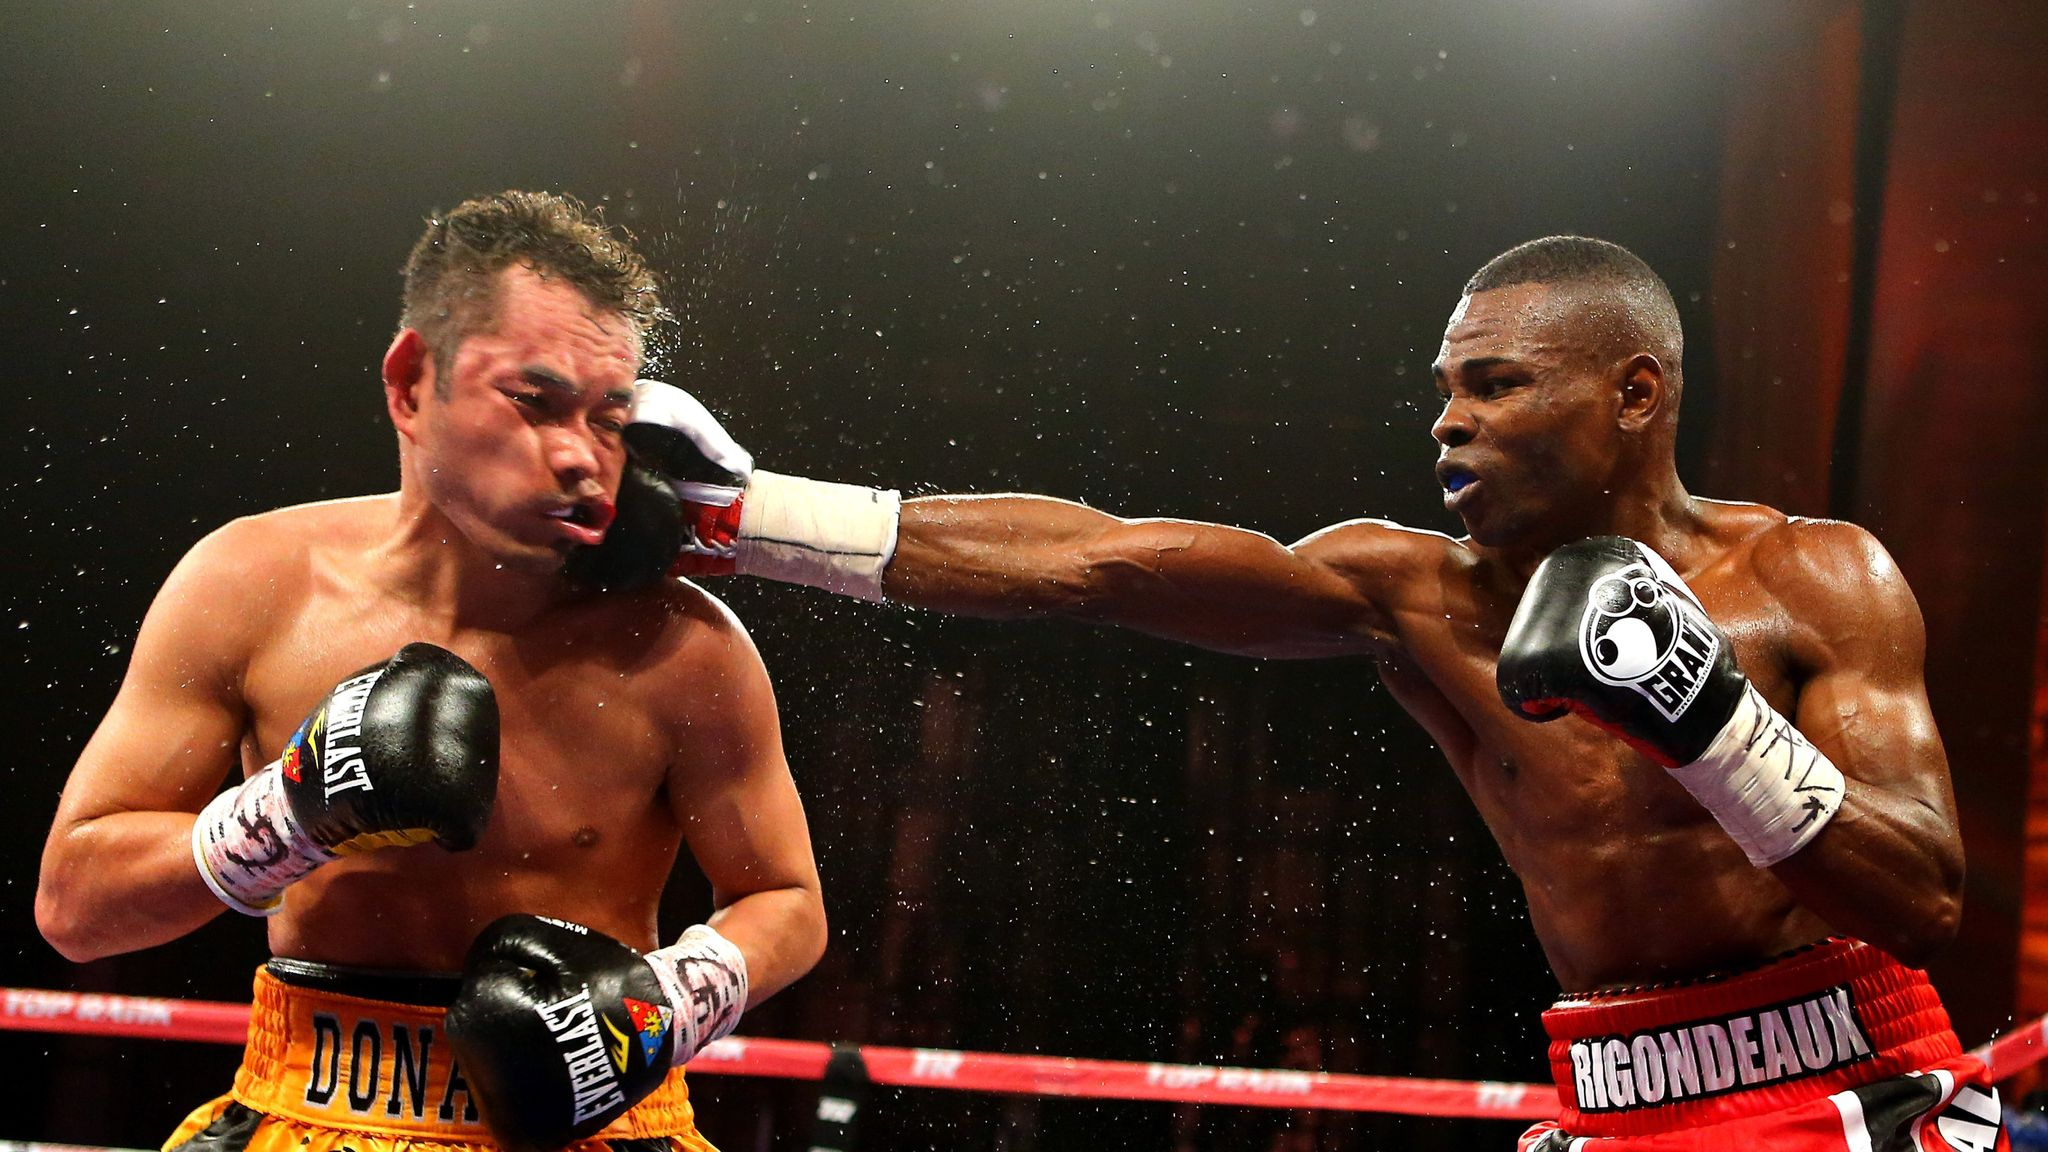 Donaire rigondeaux betting odds online betting guide forum